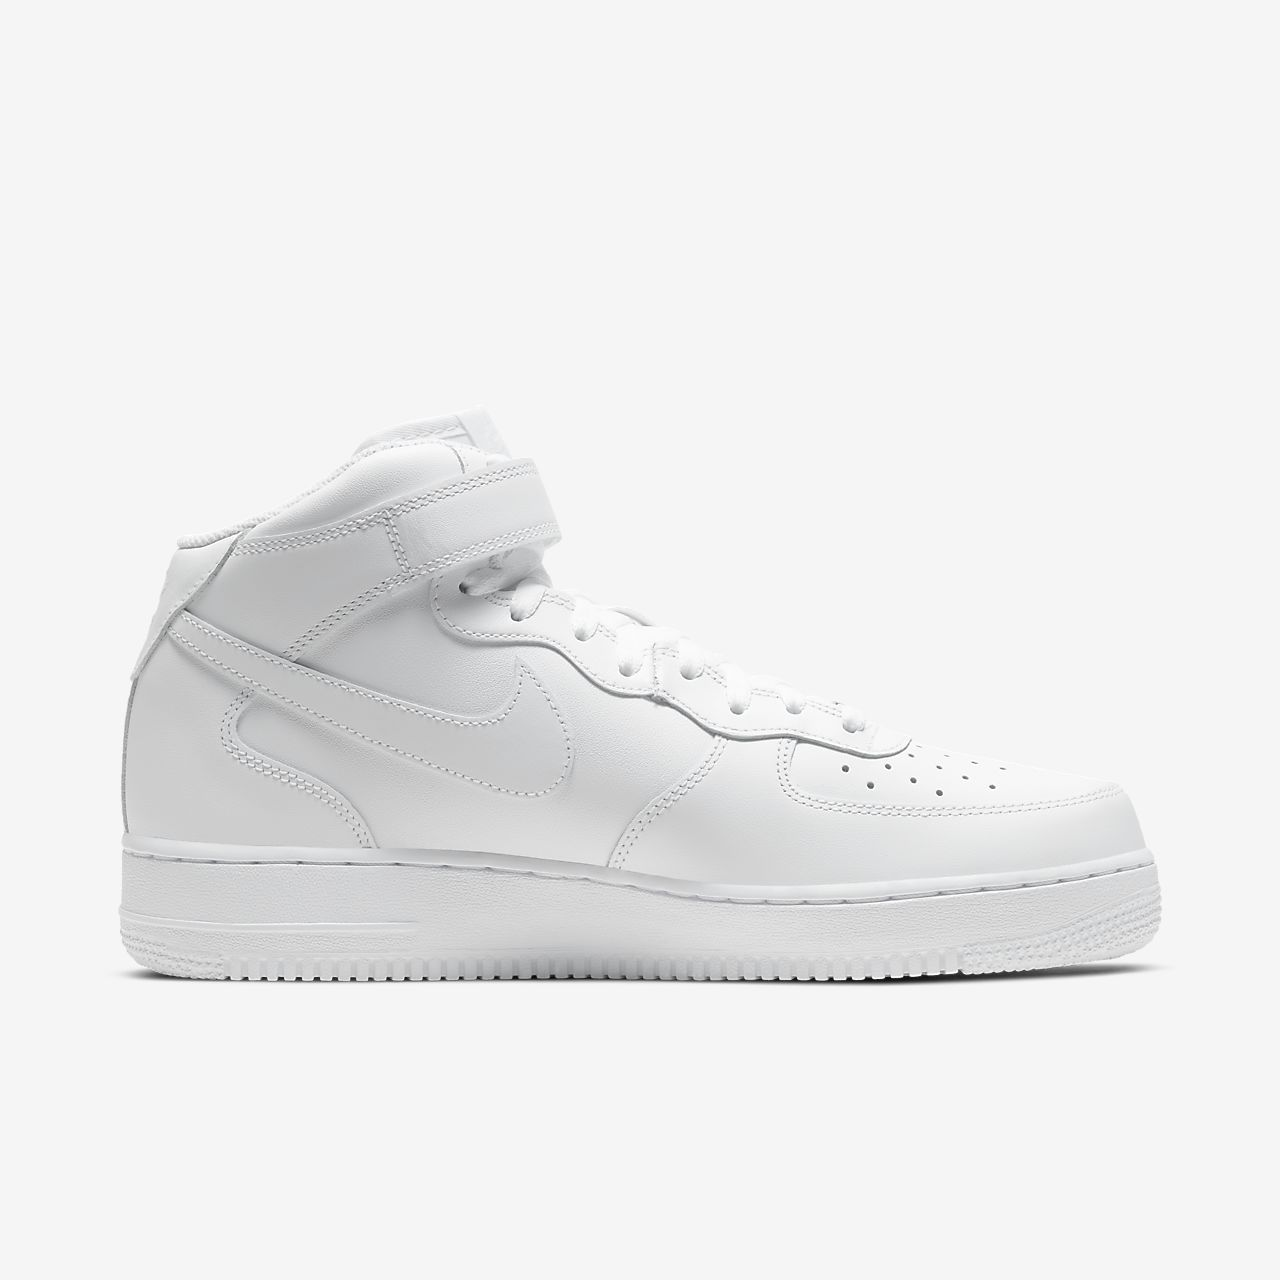 mens air force 1 '07 basketball shoe nz